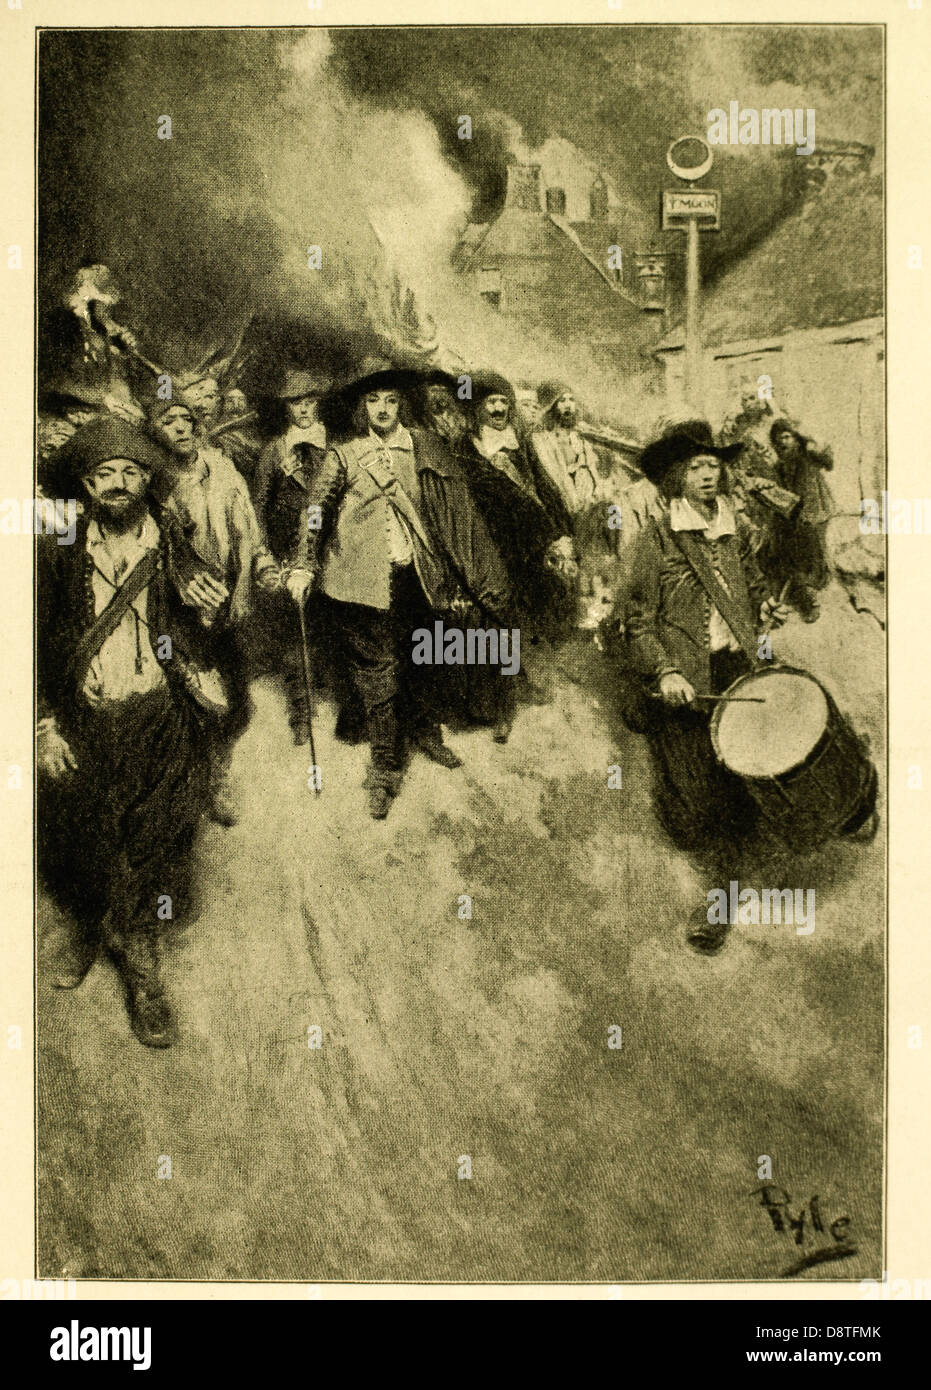 The Burning of Jamestown by Howard Pyle, 1905, Nathaniel Bacon and His Followers, Bacon's Rebellion, 1676 Stock Photo